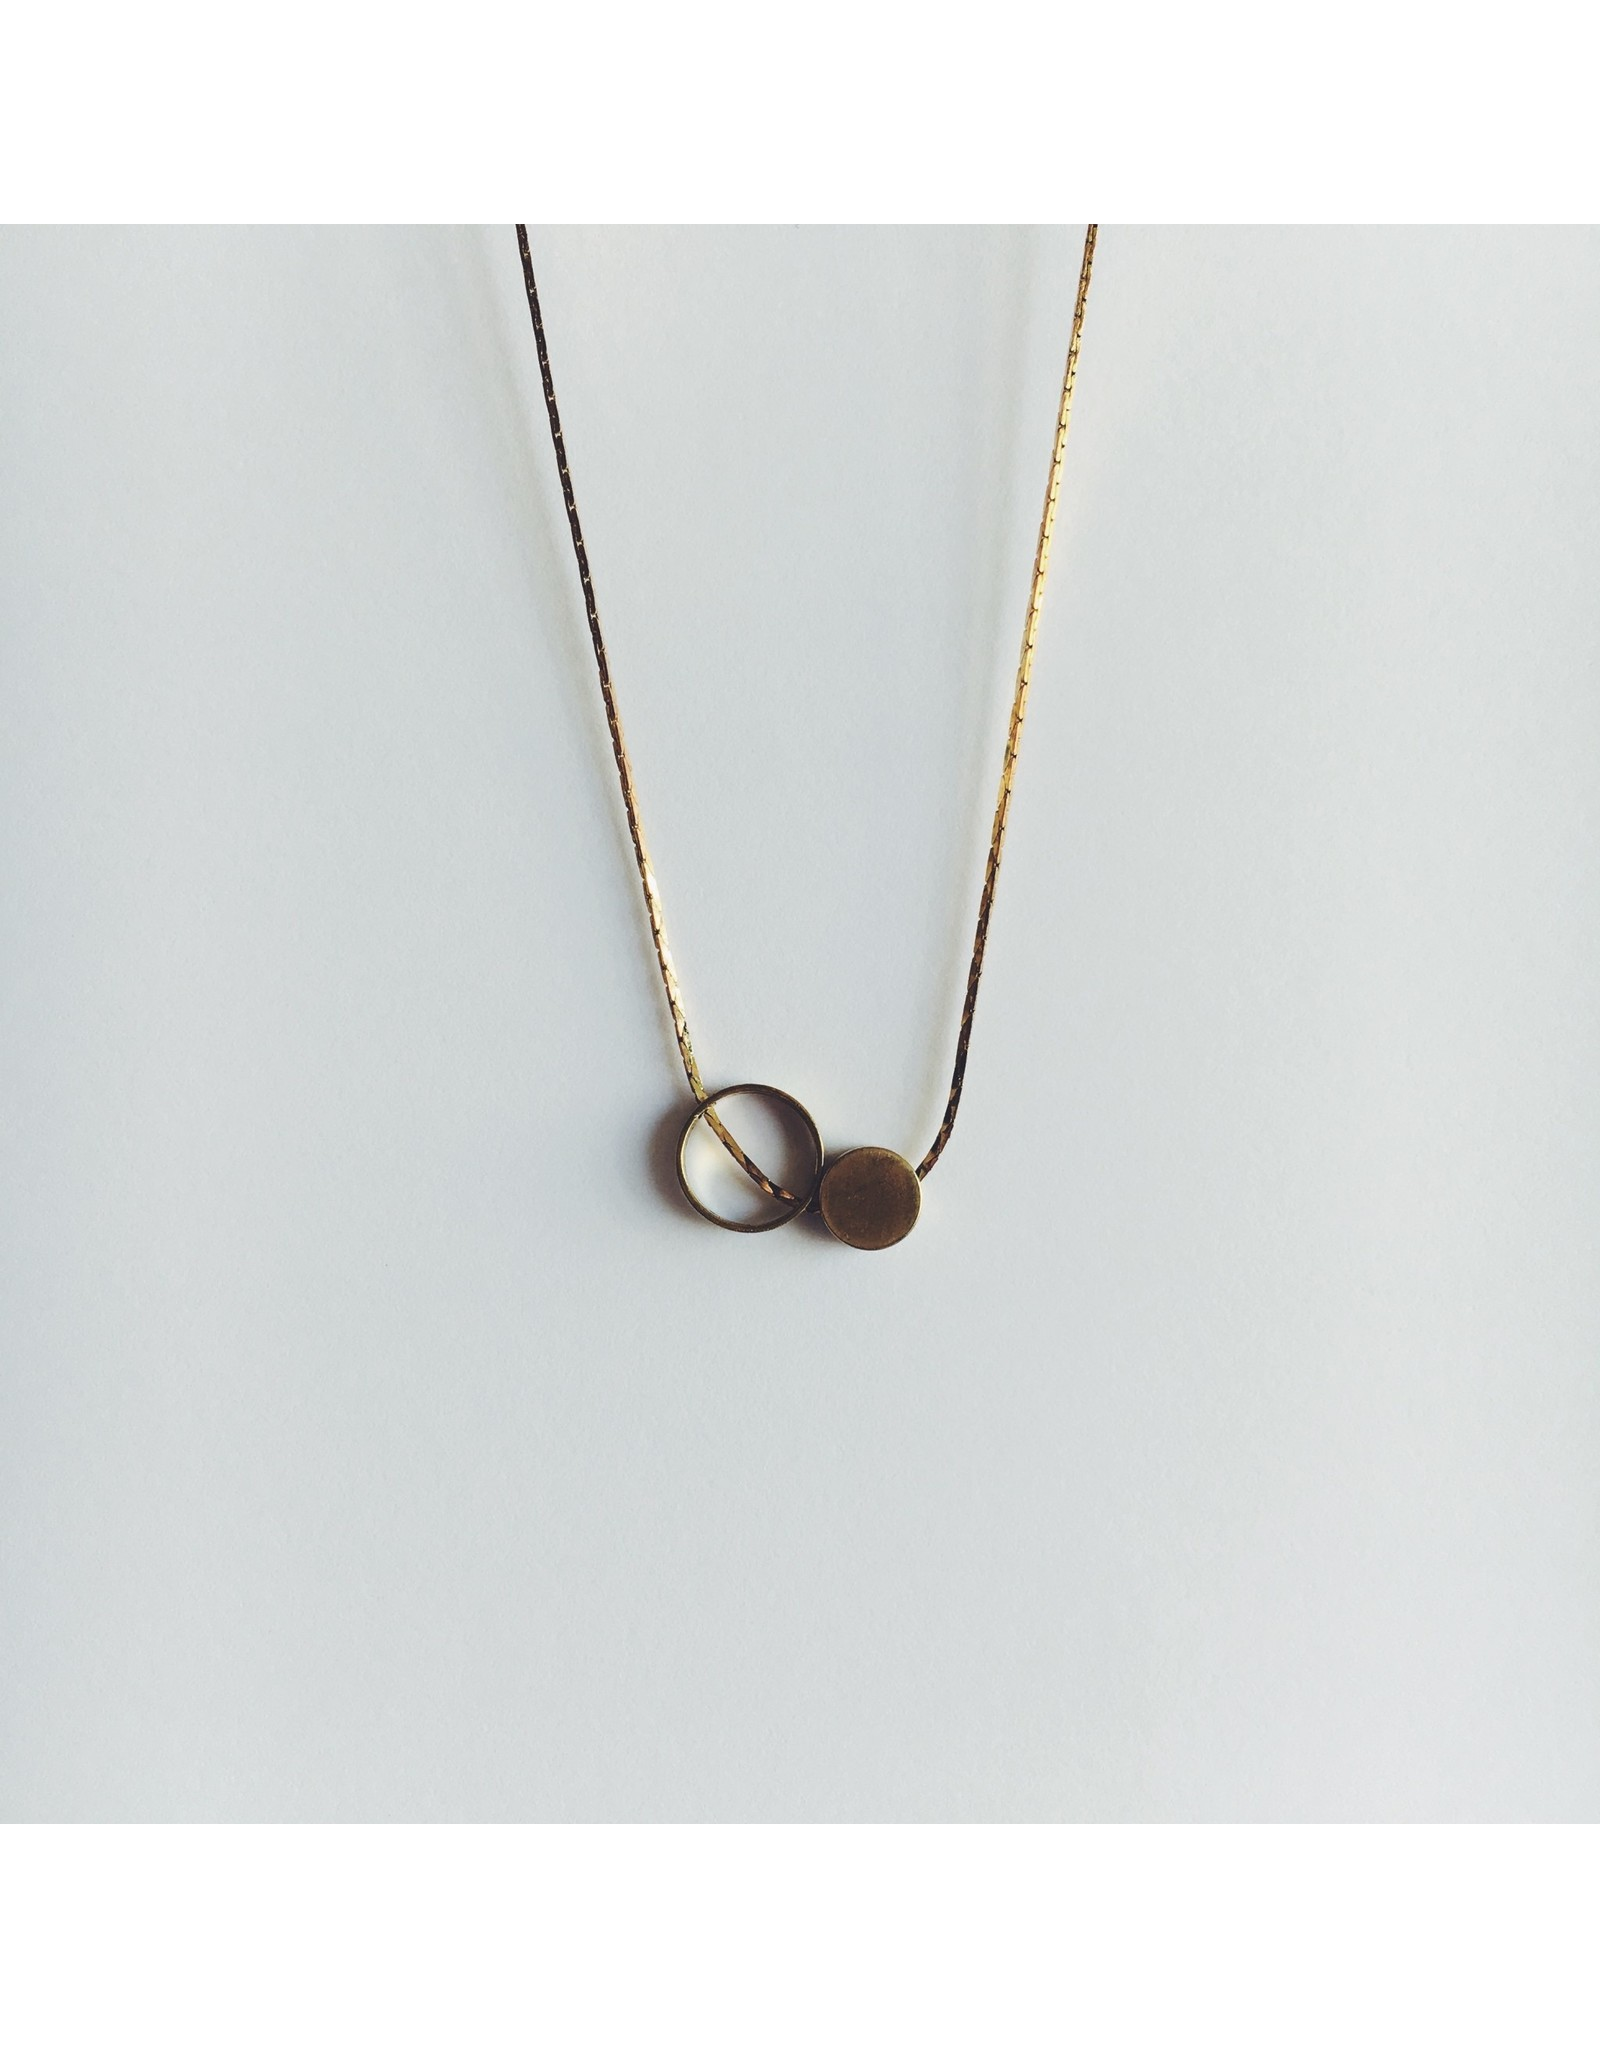 Brass Ring and Small Disc Necklace